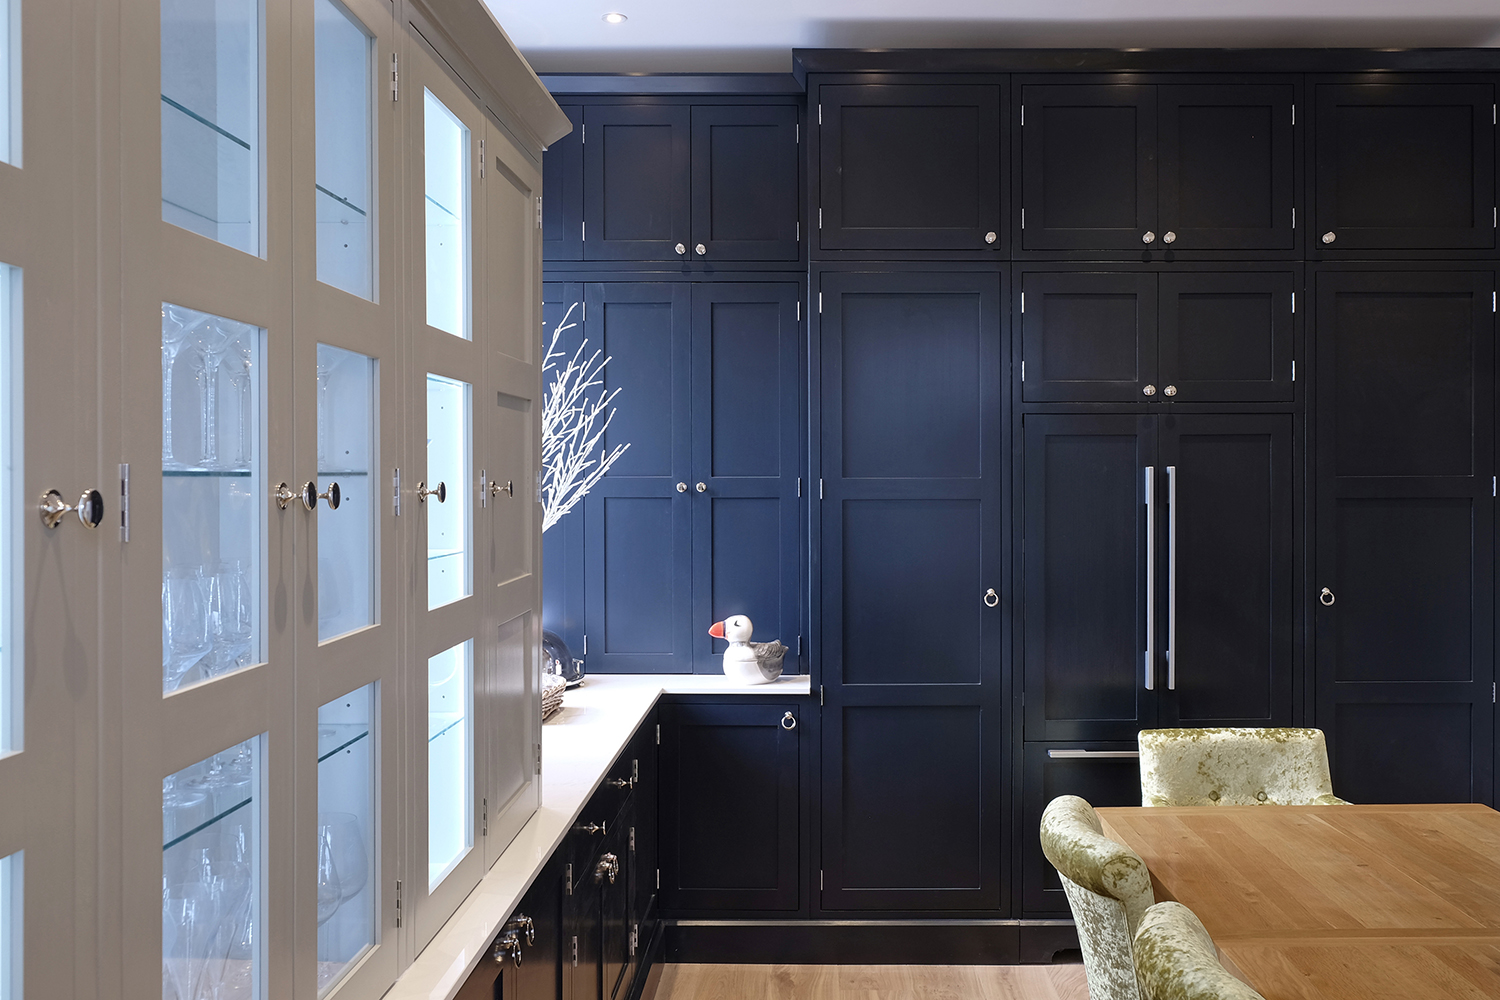 Contrasting kitchen cabinets